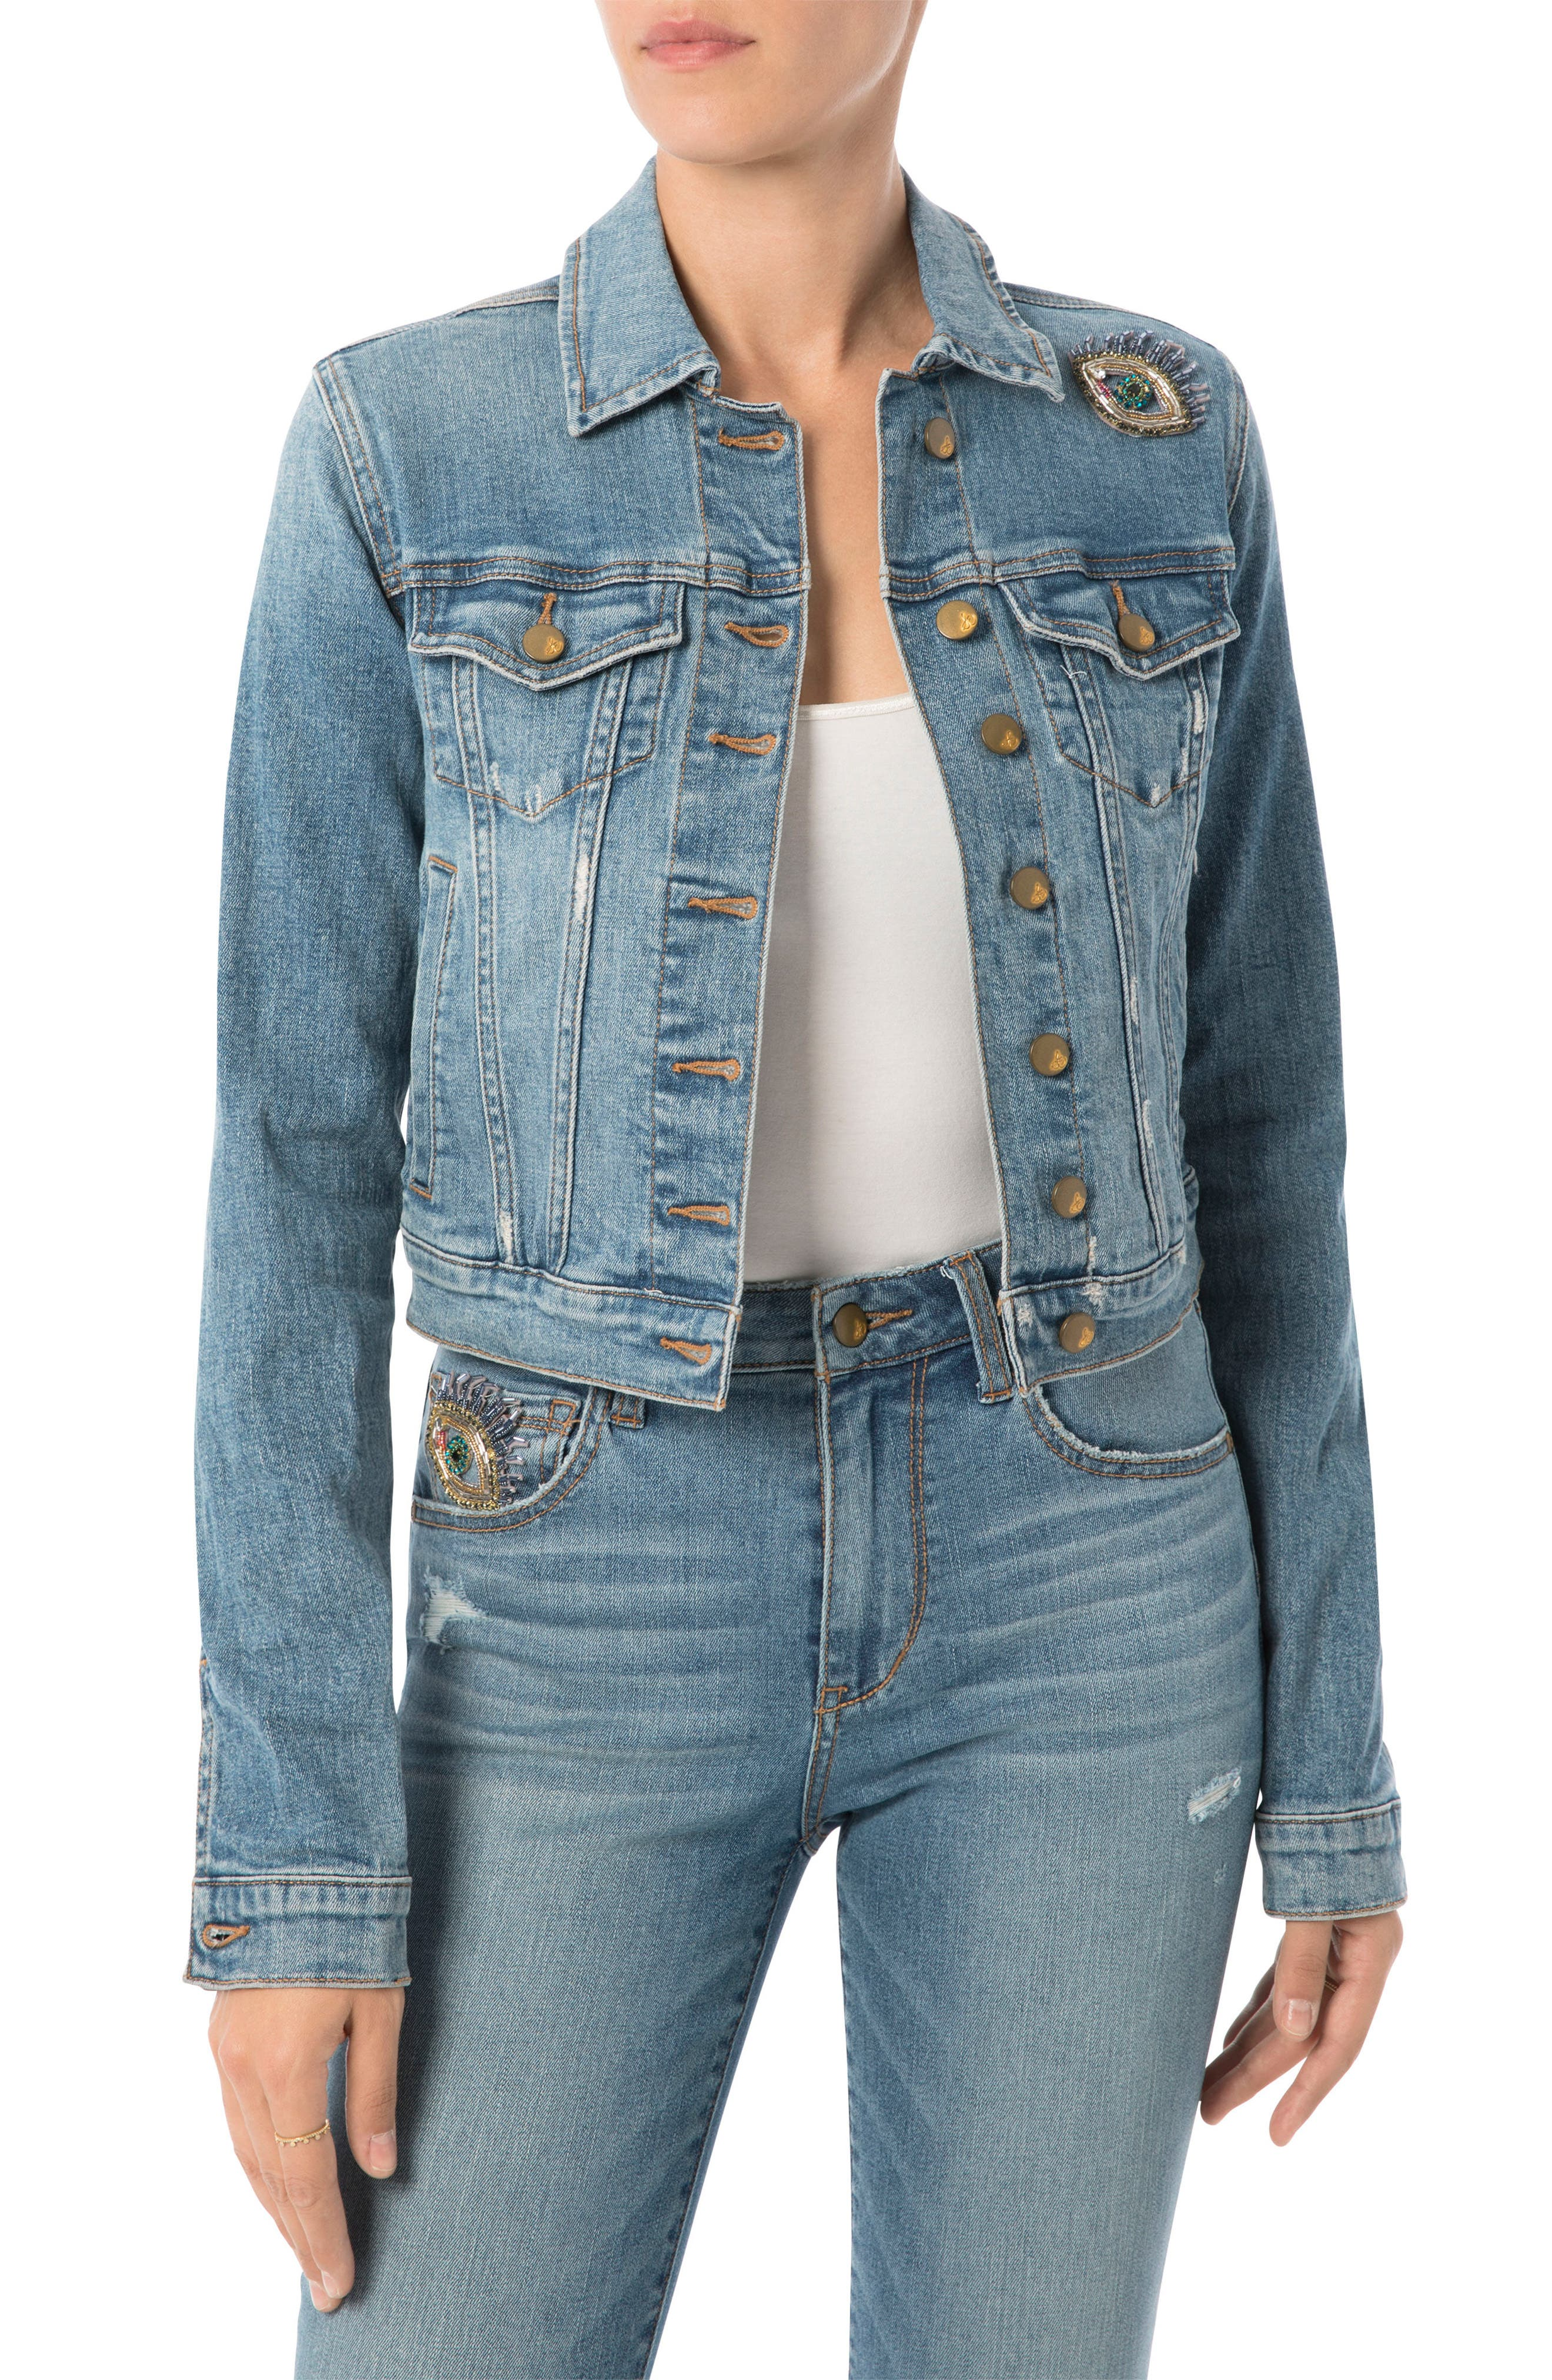 Sam Edelman Bridget Embellished Denim Jacket